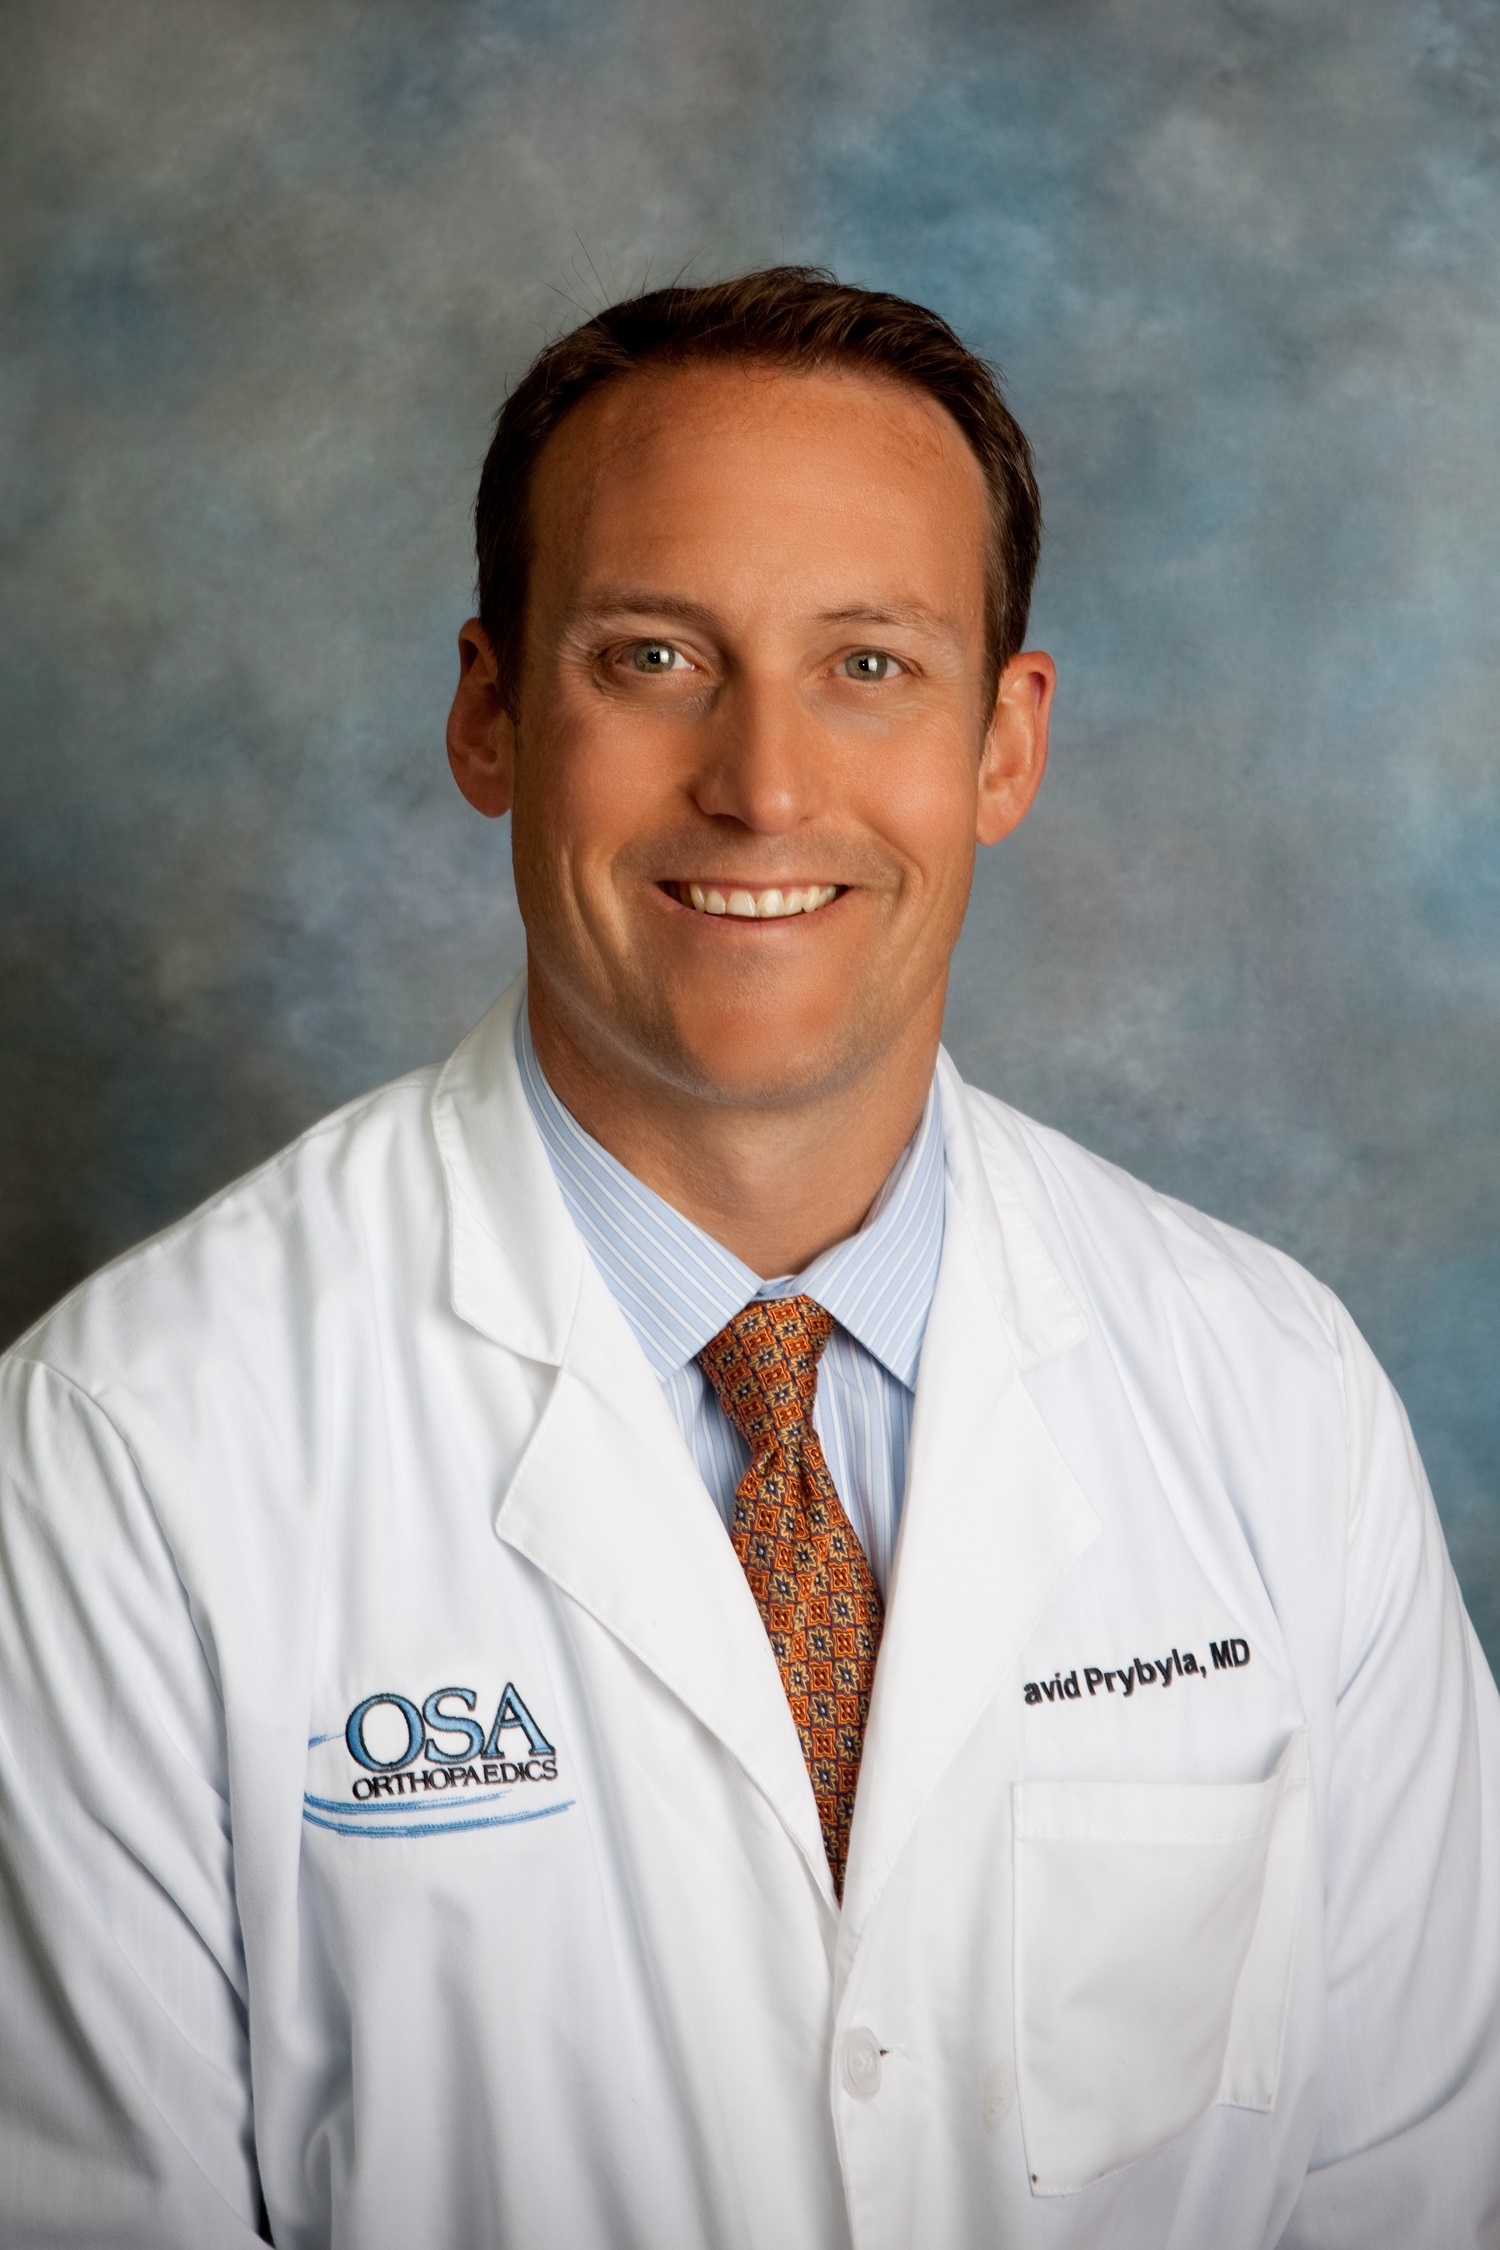 Dr. David Prybyla, MD